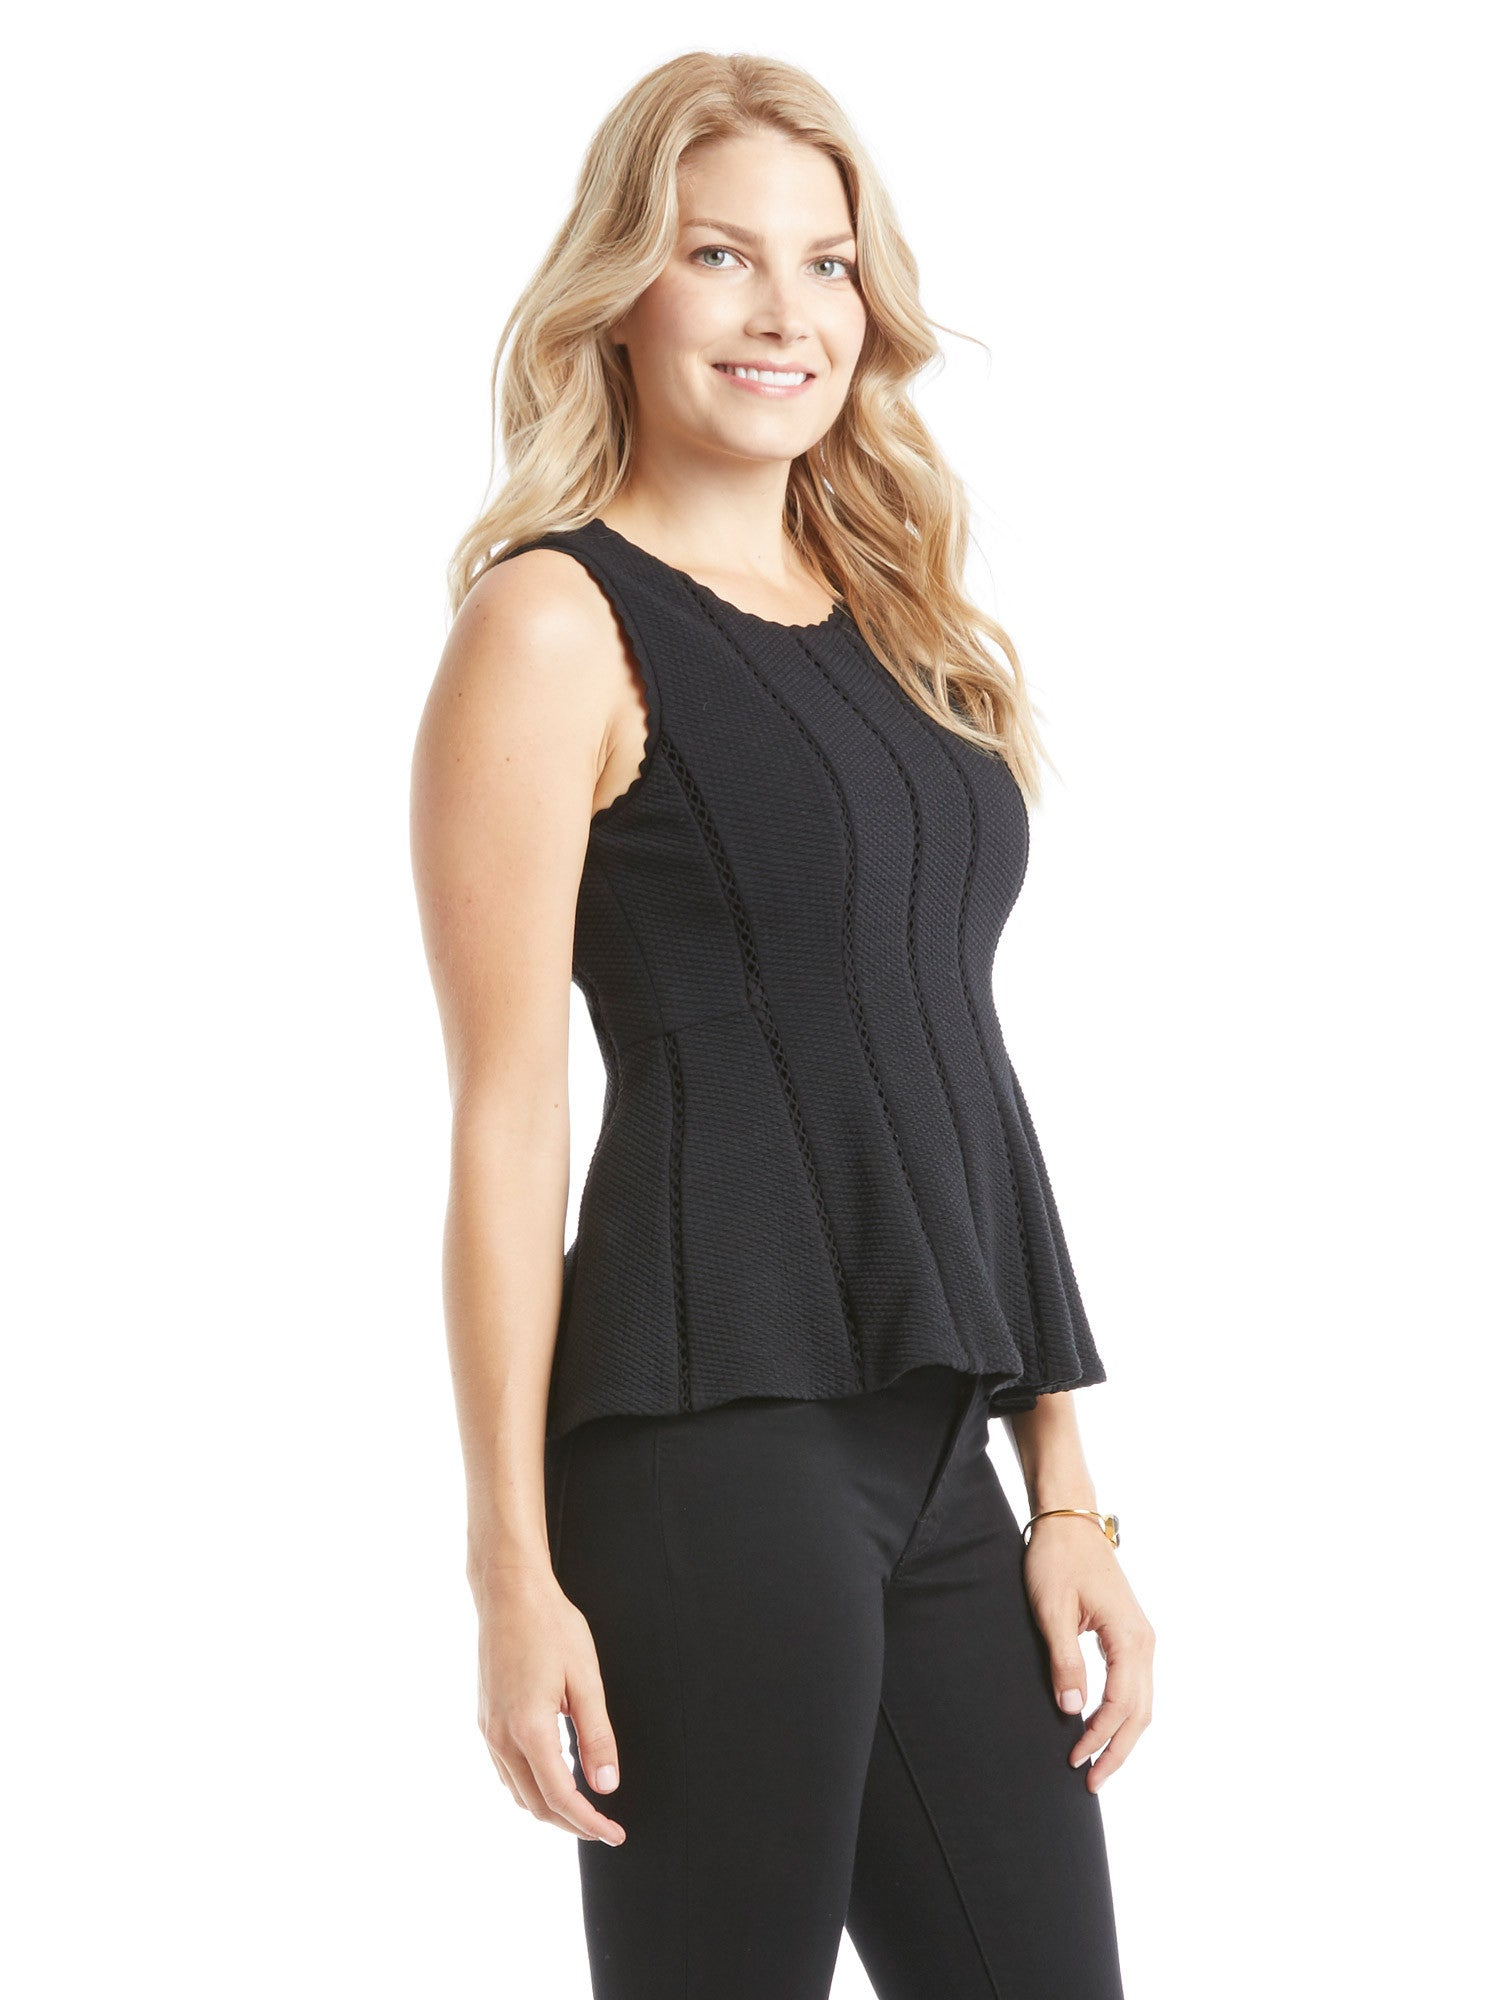 TILDEN | Rebecca Taylor Sleeveless Diamond Textured Top